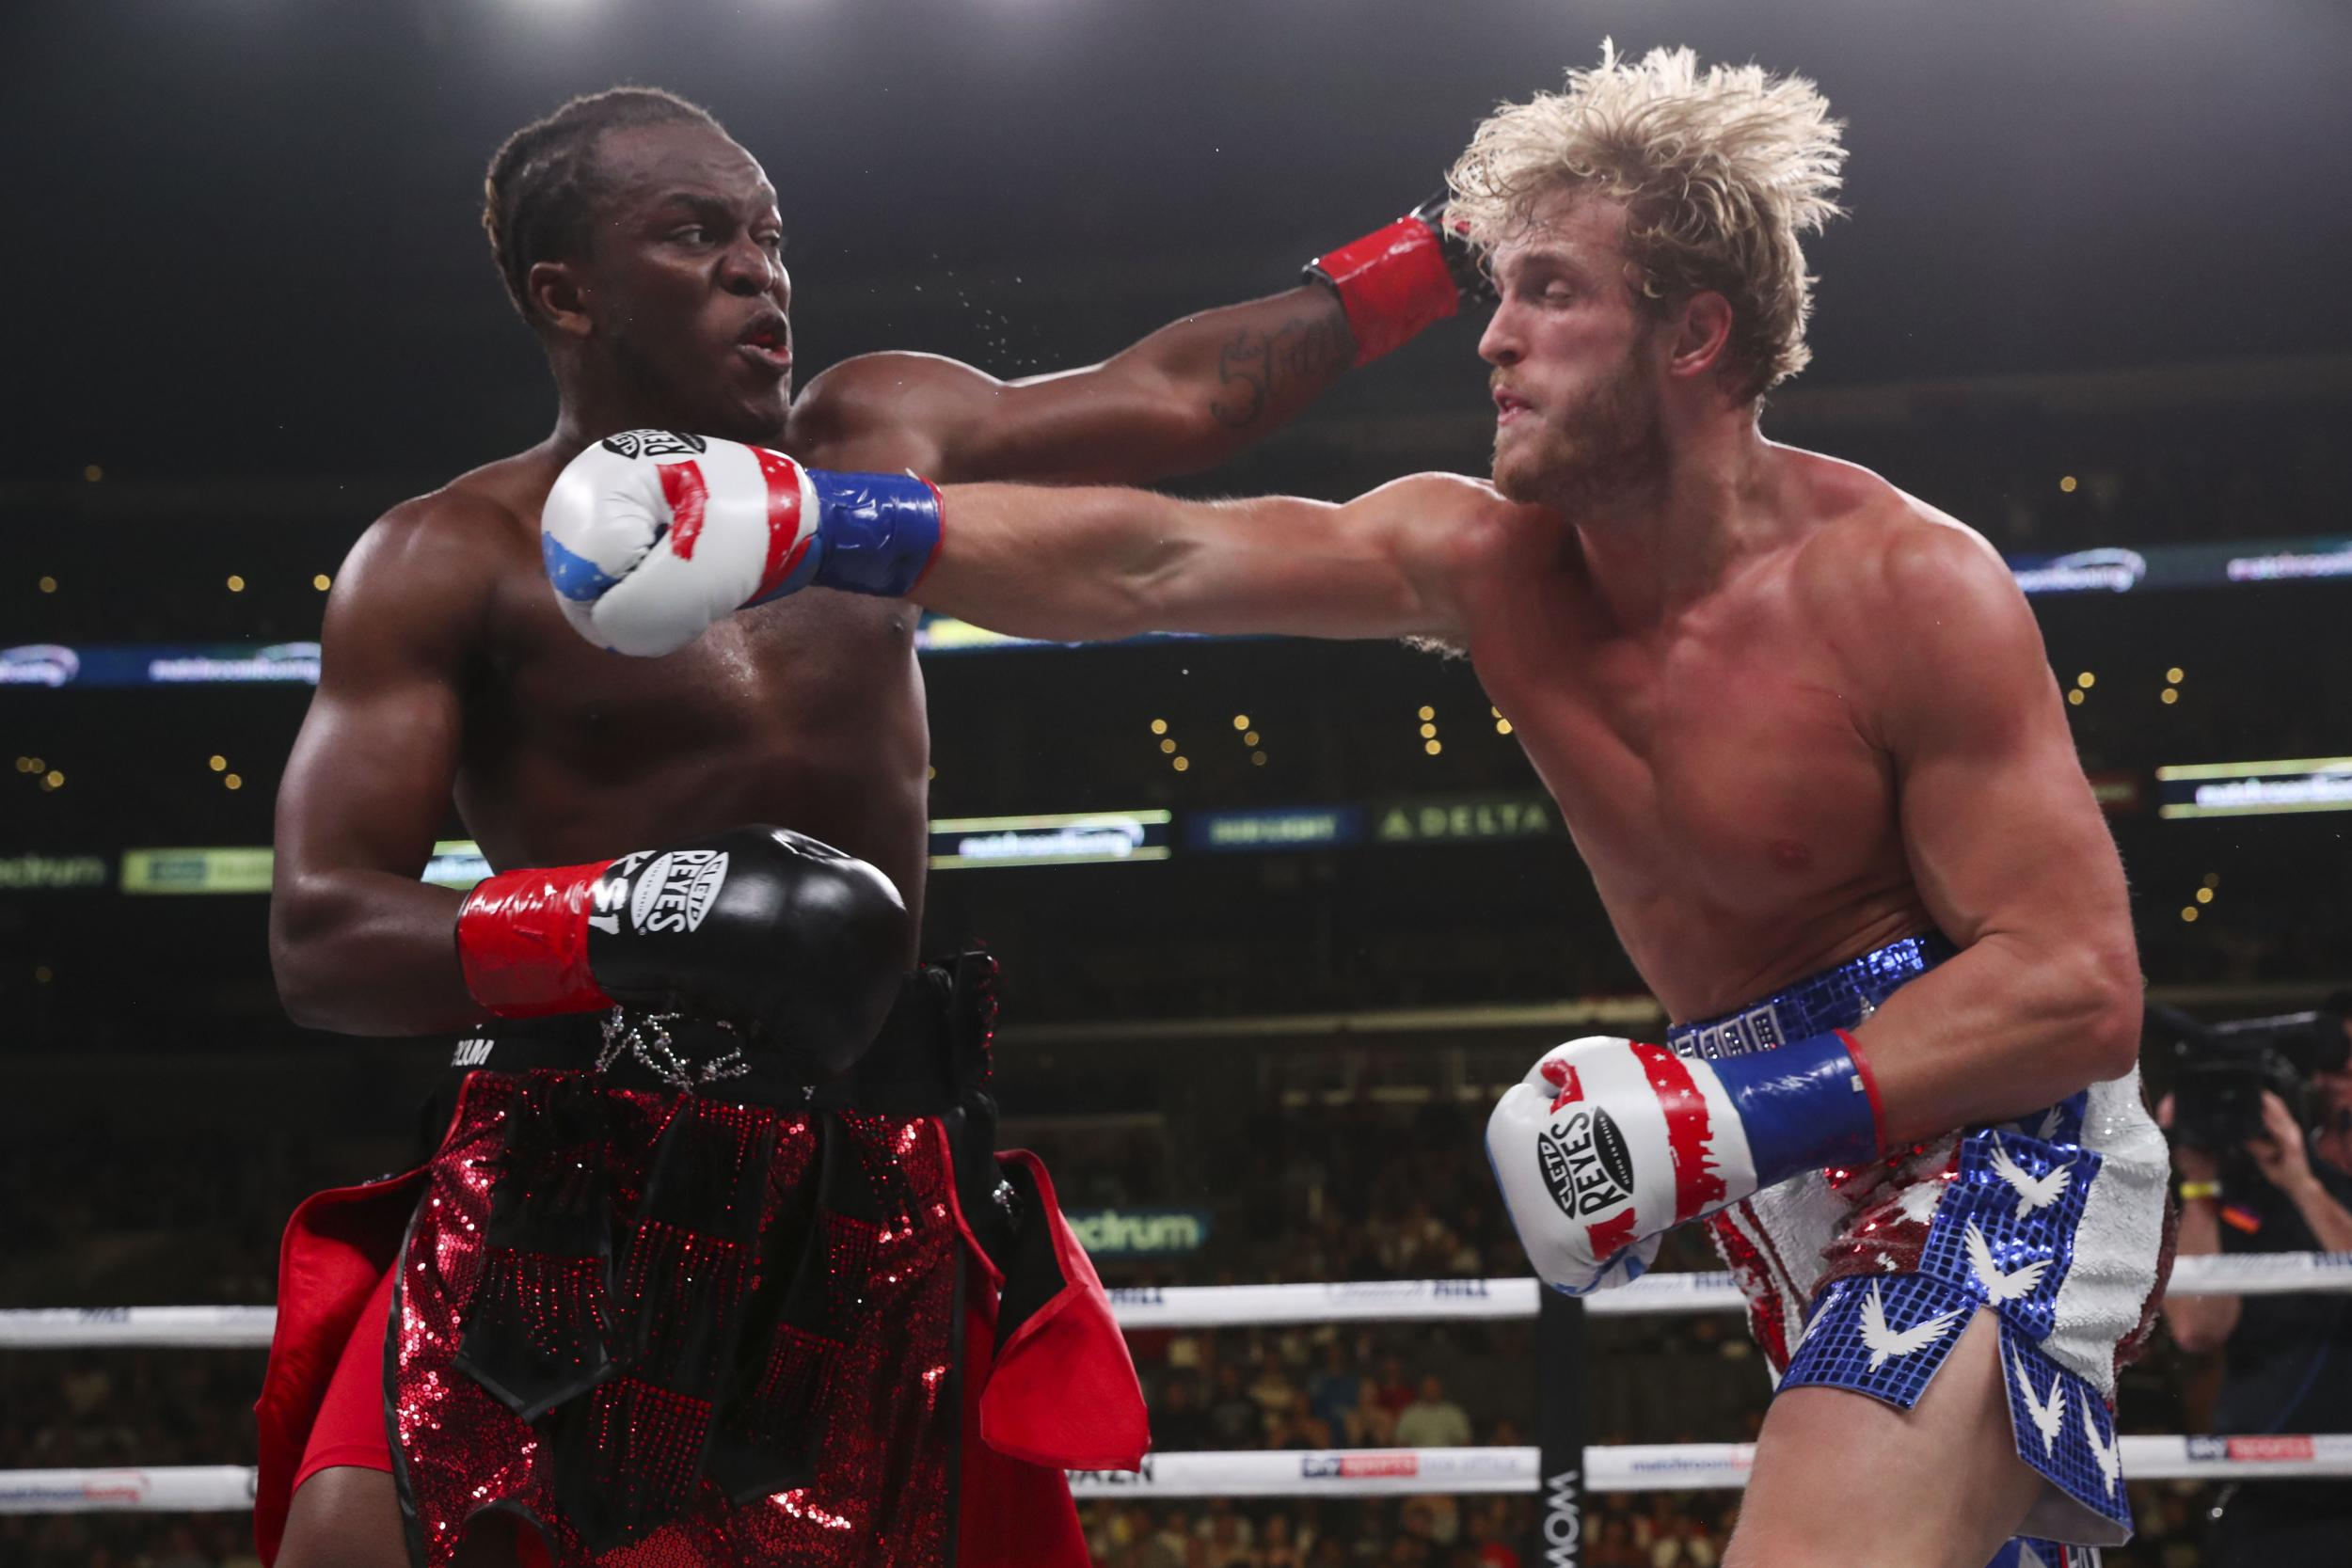 KSI vs Logan Paul LIVE result: KSI wins to settle rivalry on points decision as YouTubers admit rivalry was 'to sell fight'